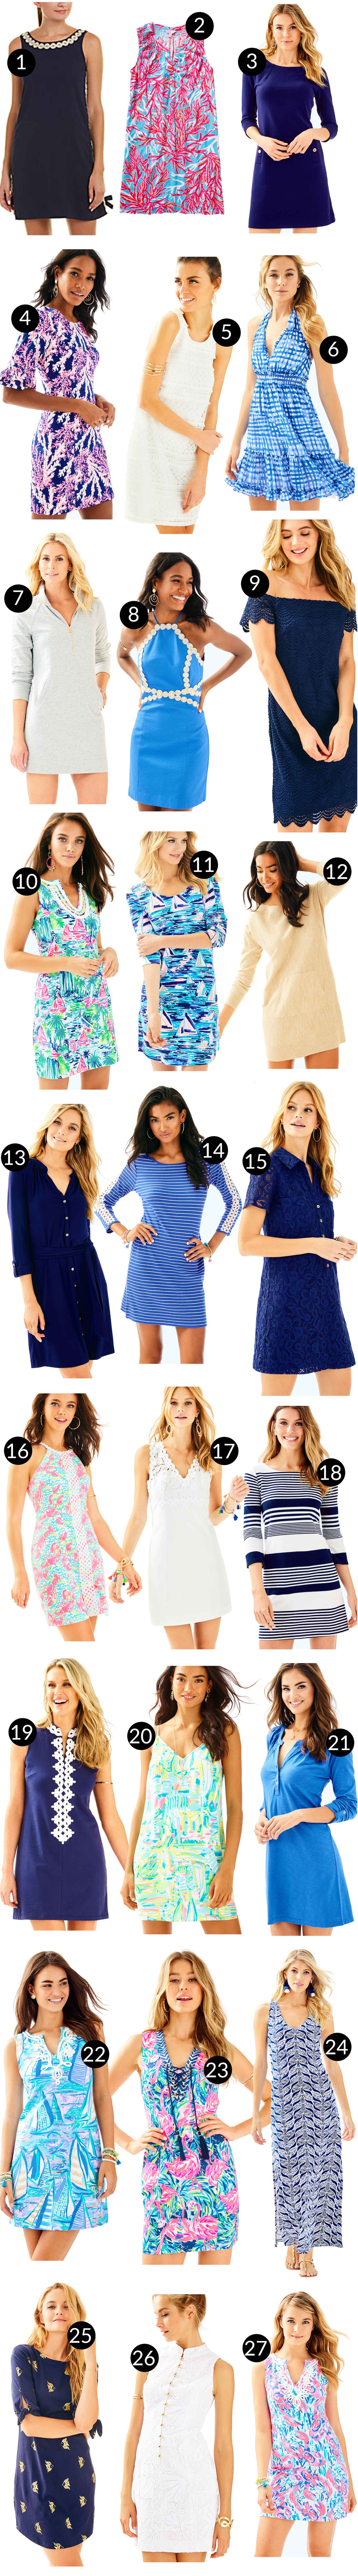 Dresses - Lilly Pulitzer After Party Sale